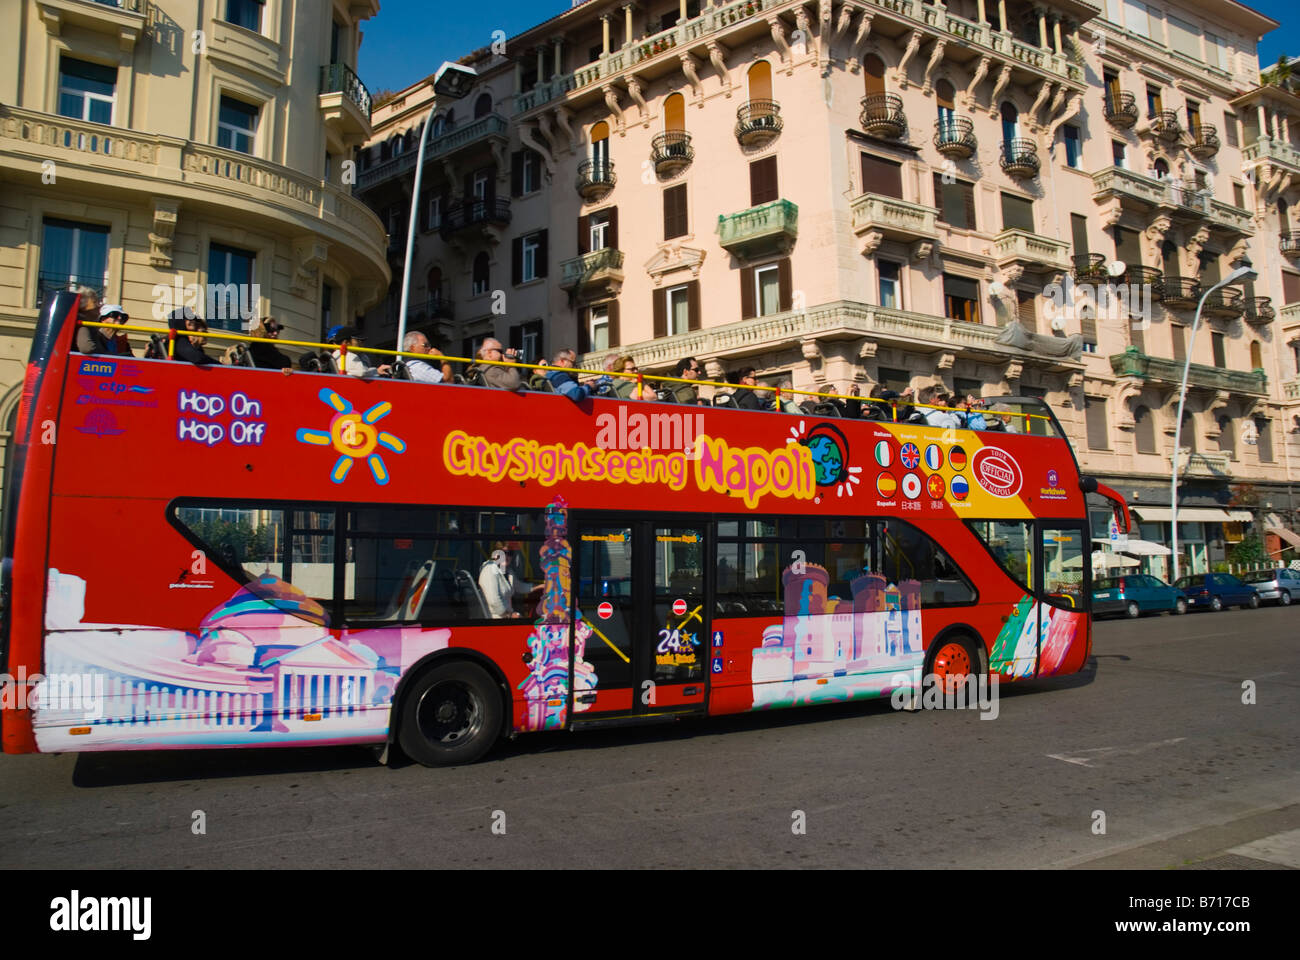 City sightseeing bus in central Naples Italy Europe - Stock Image